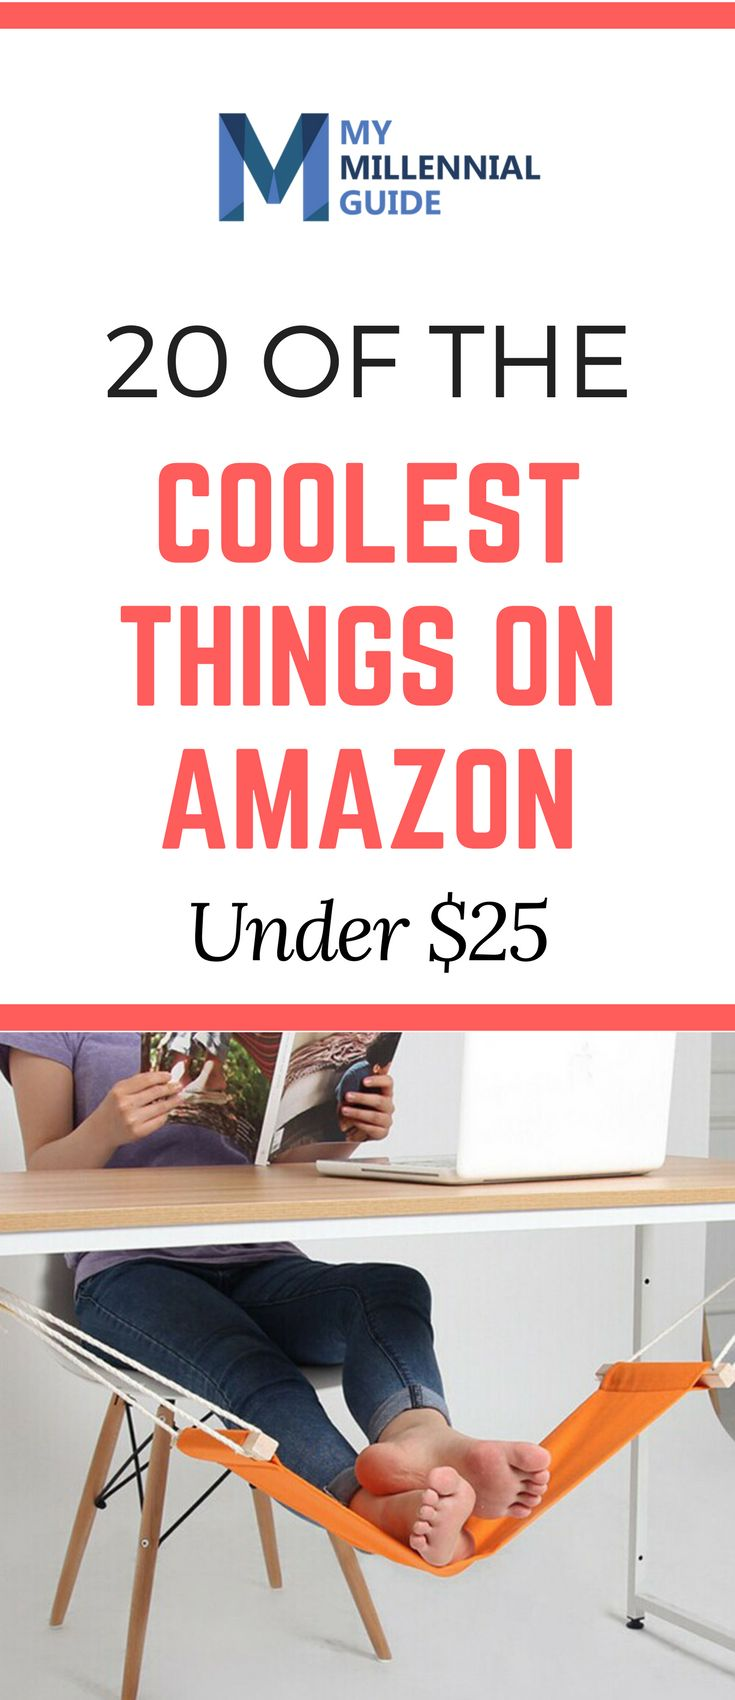 20 of the Coolest Things to Buy on Amazon Under $25. They all will be able to ship to you under two days if you have Amazon Prime. These can also serve as a nice gift for a friend or coworker.